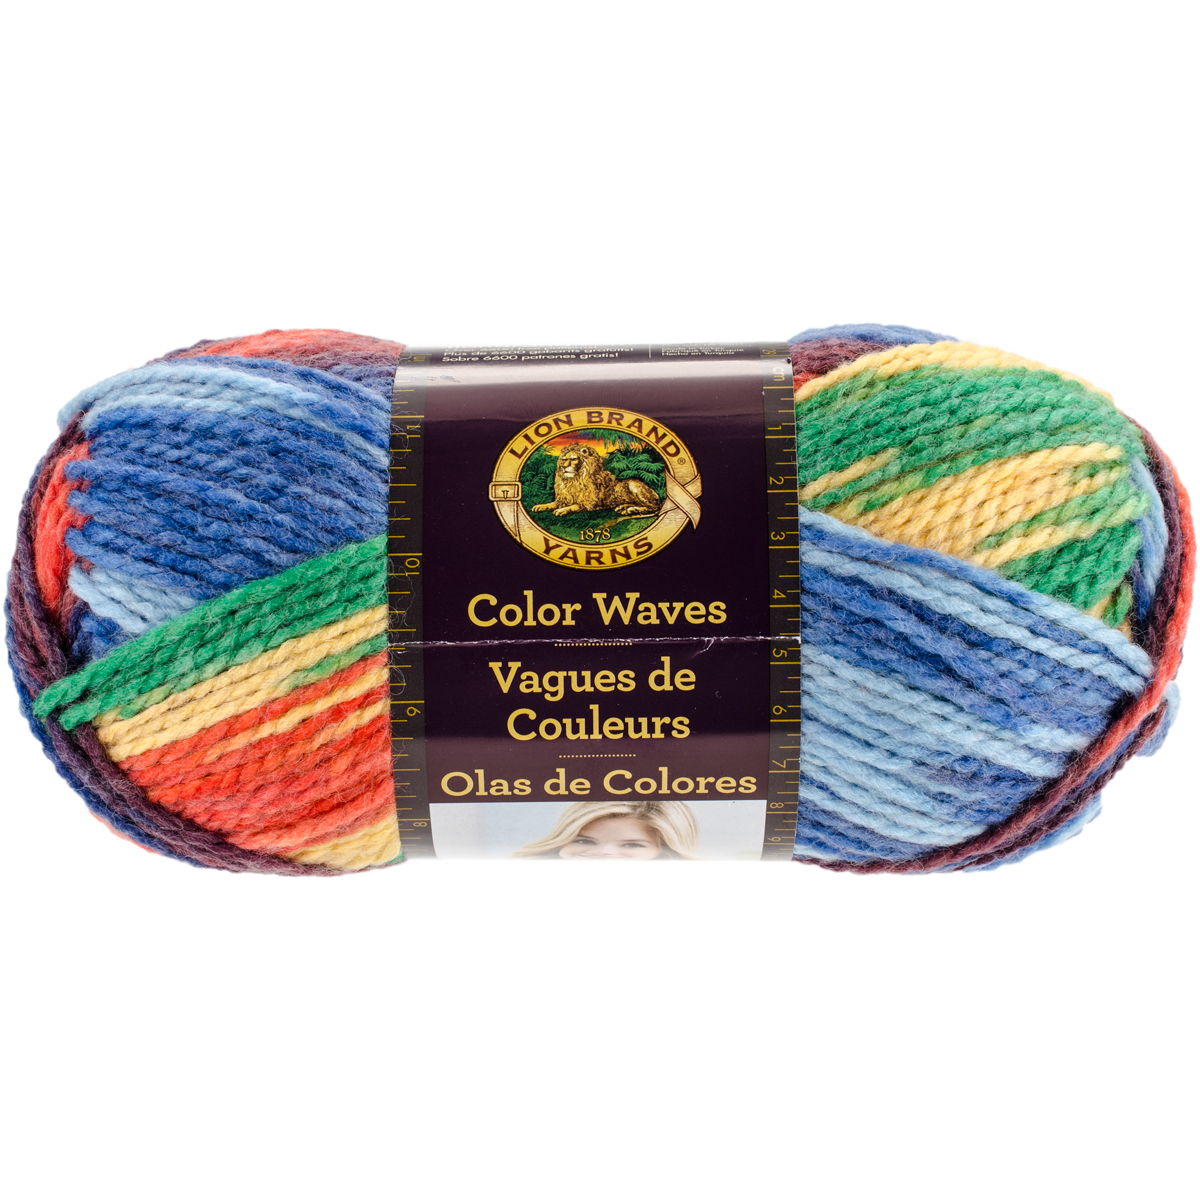 Knitting Warehouse Free Shipping : Lion brand color waves yarn starboard